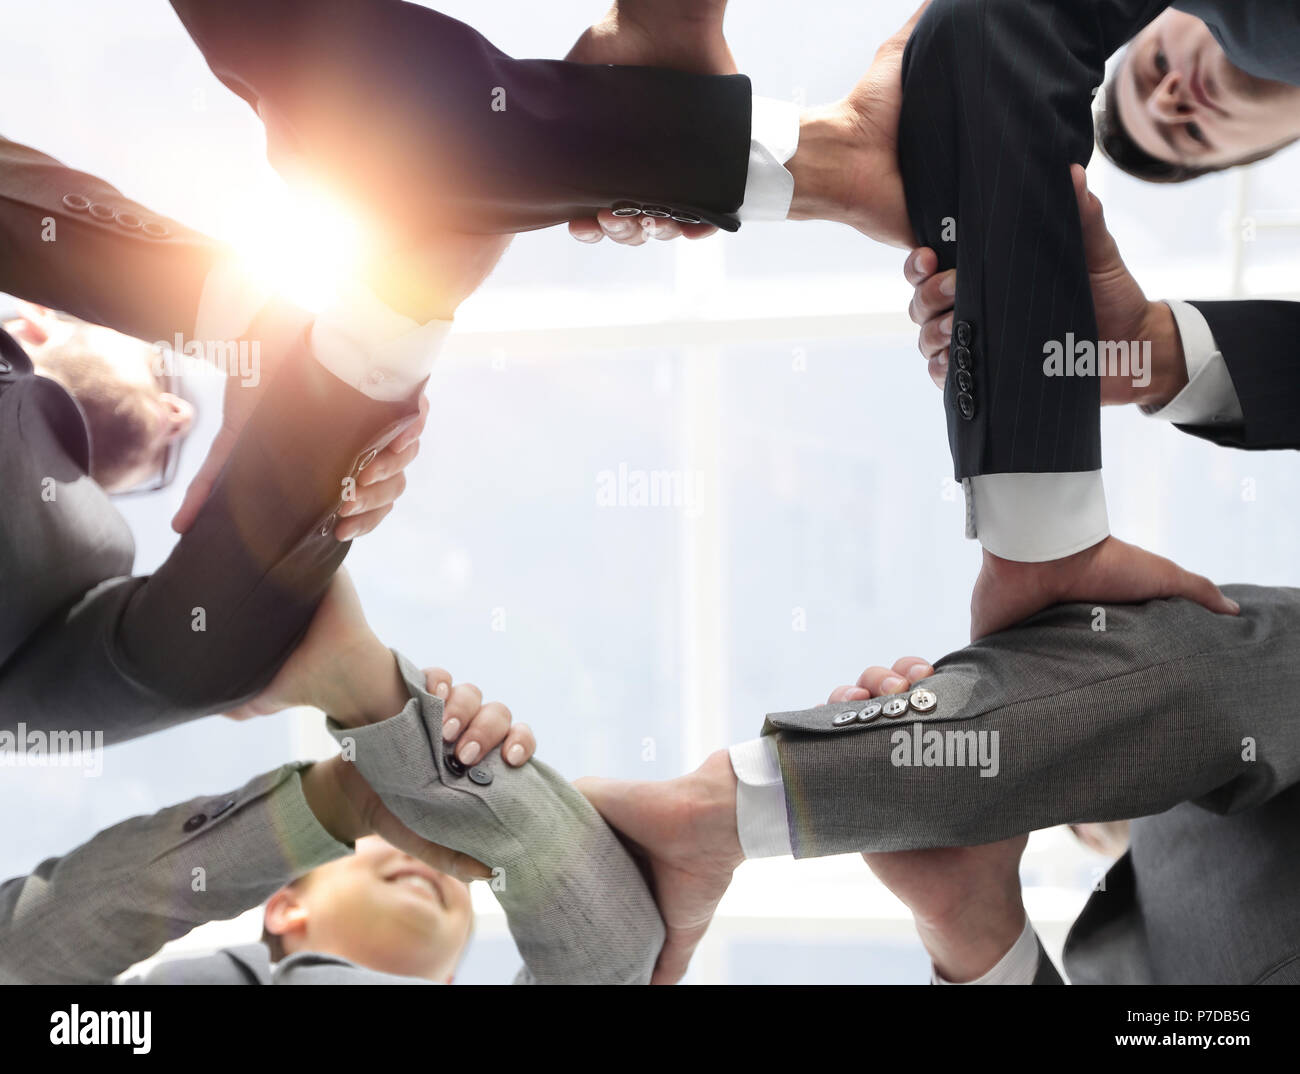 business team are taking each other's hands - Stock Image